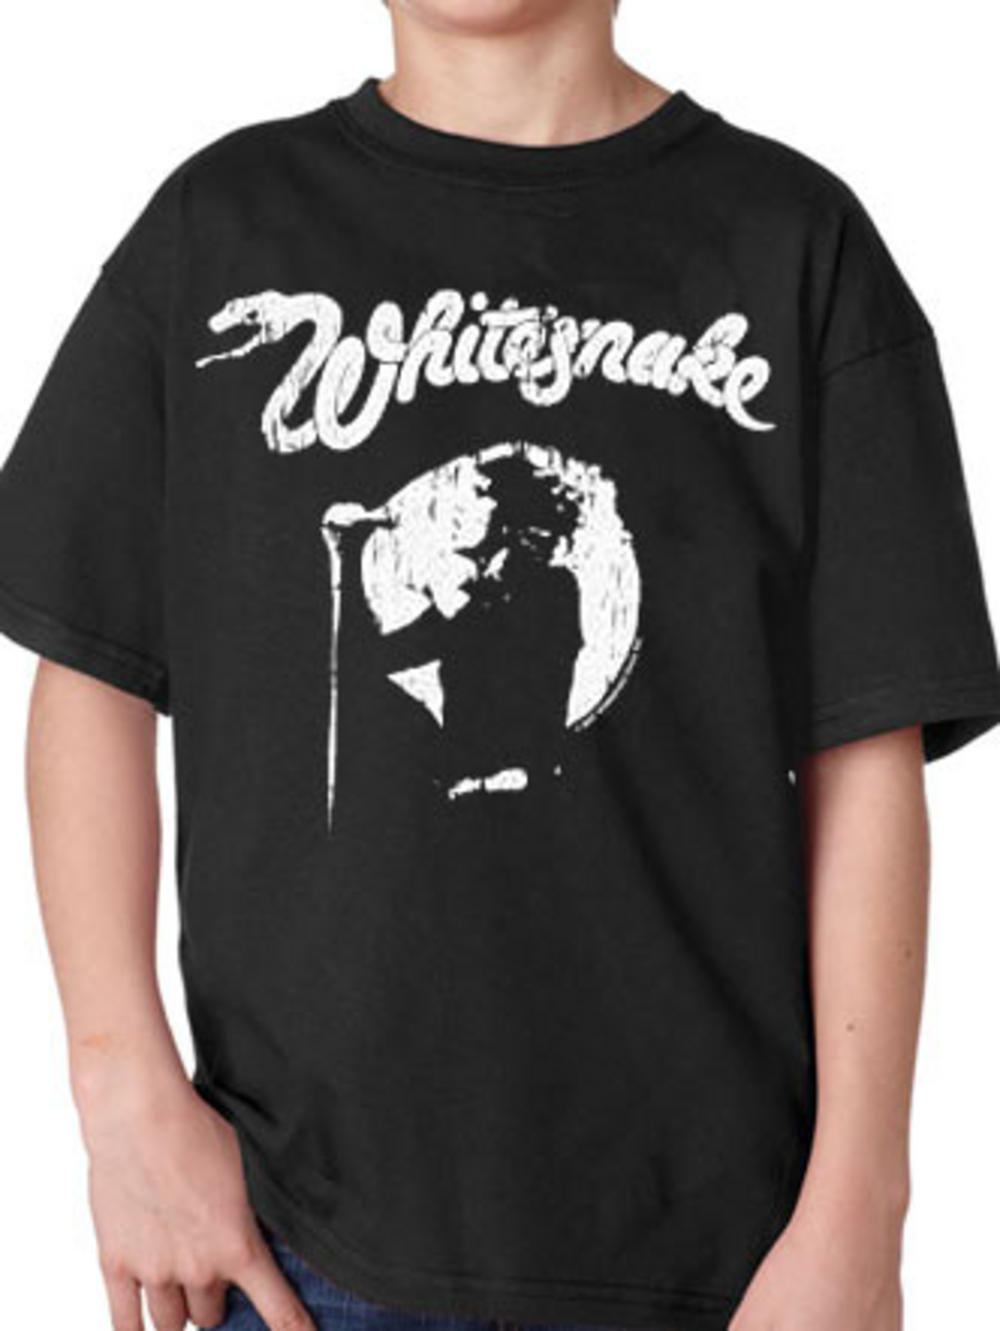 You searched for: whitesnake shirt! Etsy is the home to thousands of handmade, vintage, and one-of-a-kind products and gifts related to your search. No matter what you're looking for or where you are in the world, our global marketplace of sellers can help you find unique and affordable options. Let's get started!